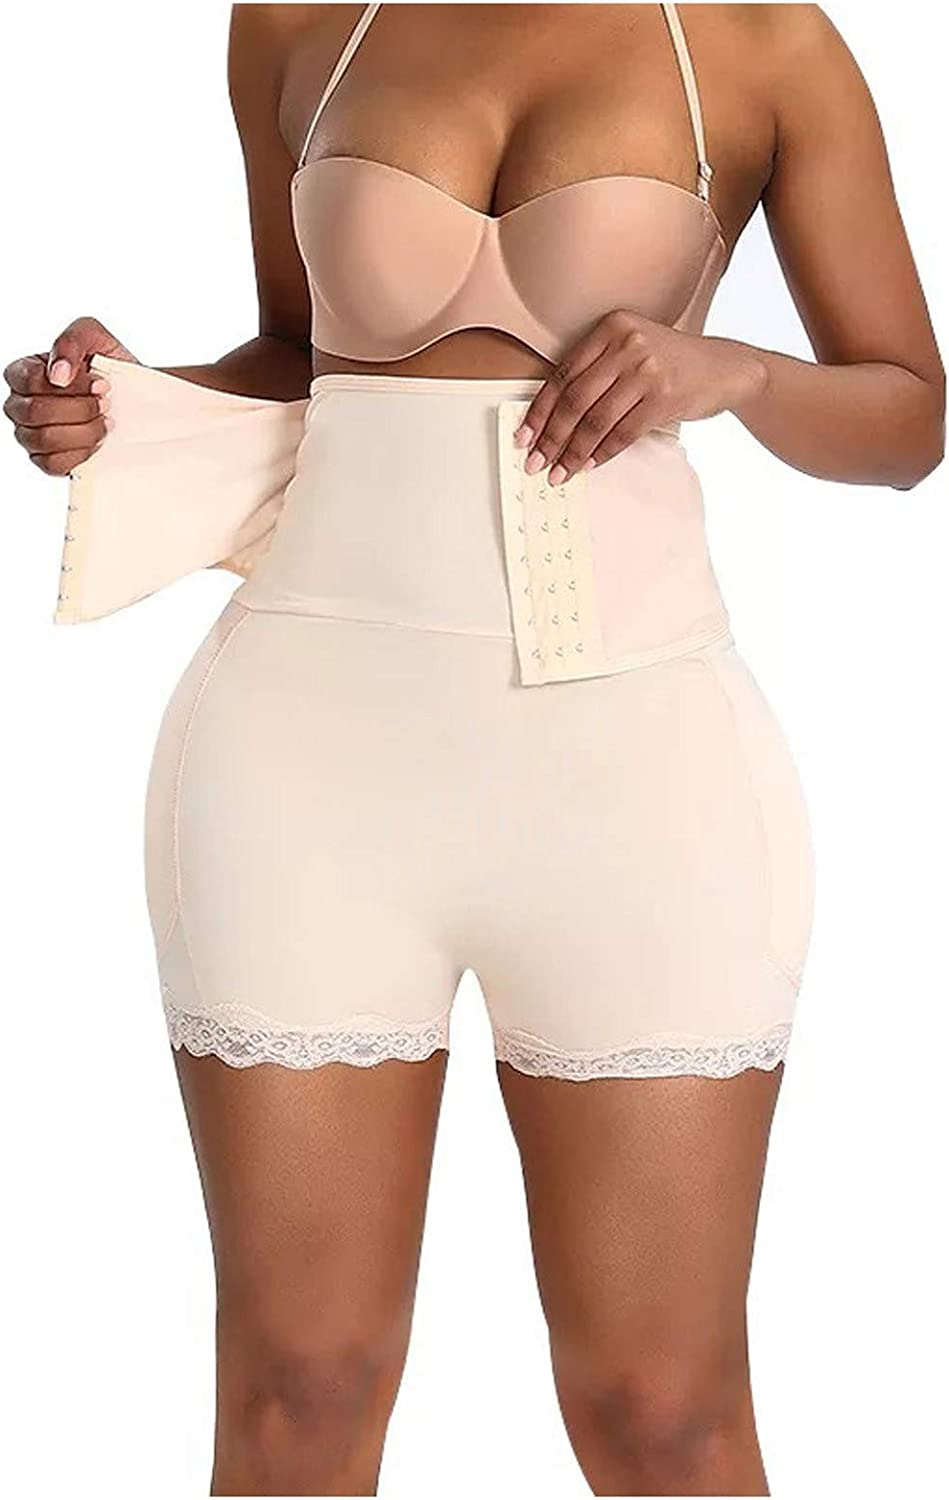 Shapewear for Women, Tummy Control-Butt Lifter High Waisted Shaper Shorts Sexy Sculpting Shaping Pants